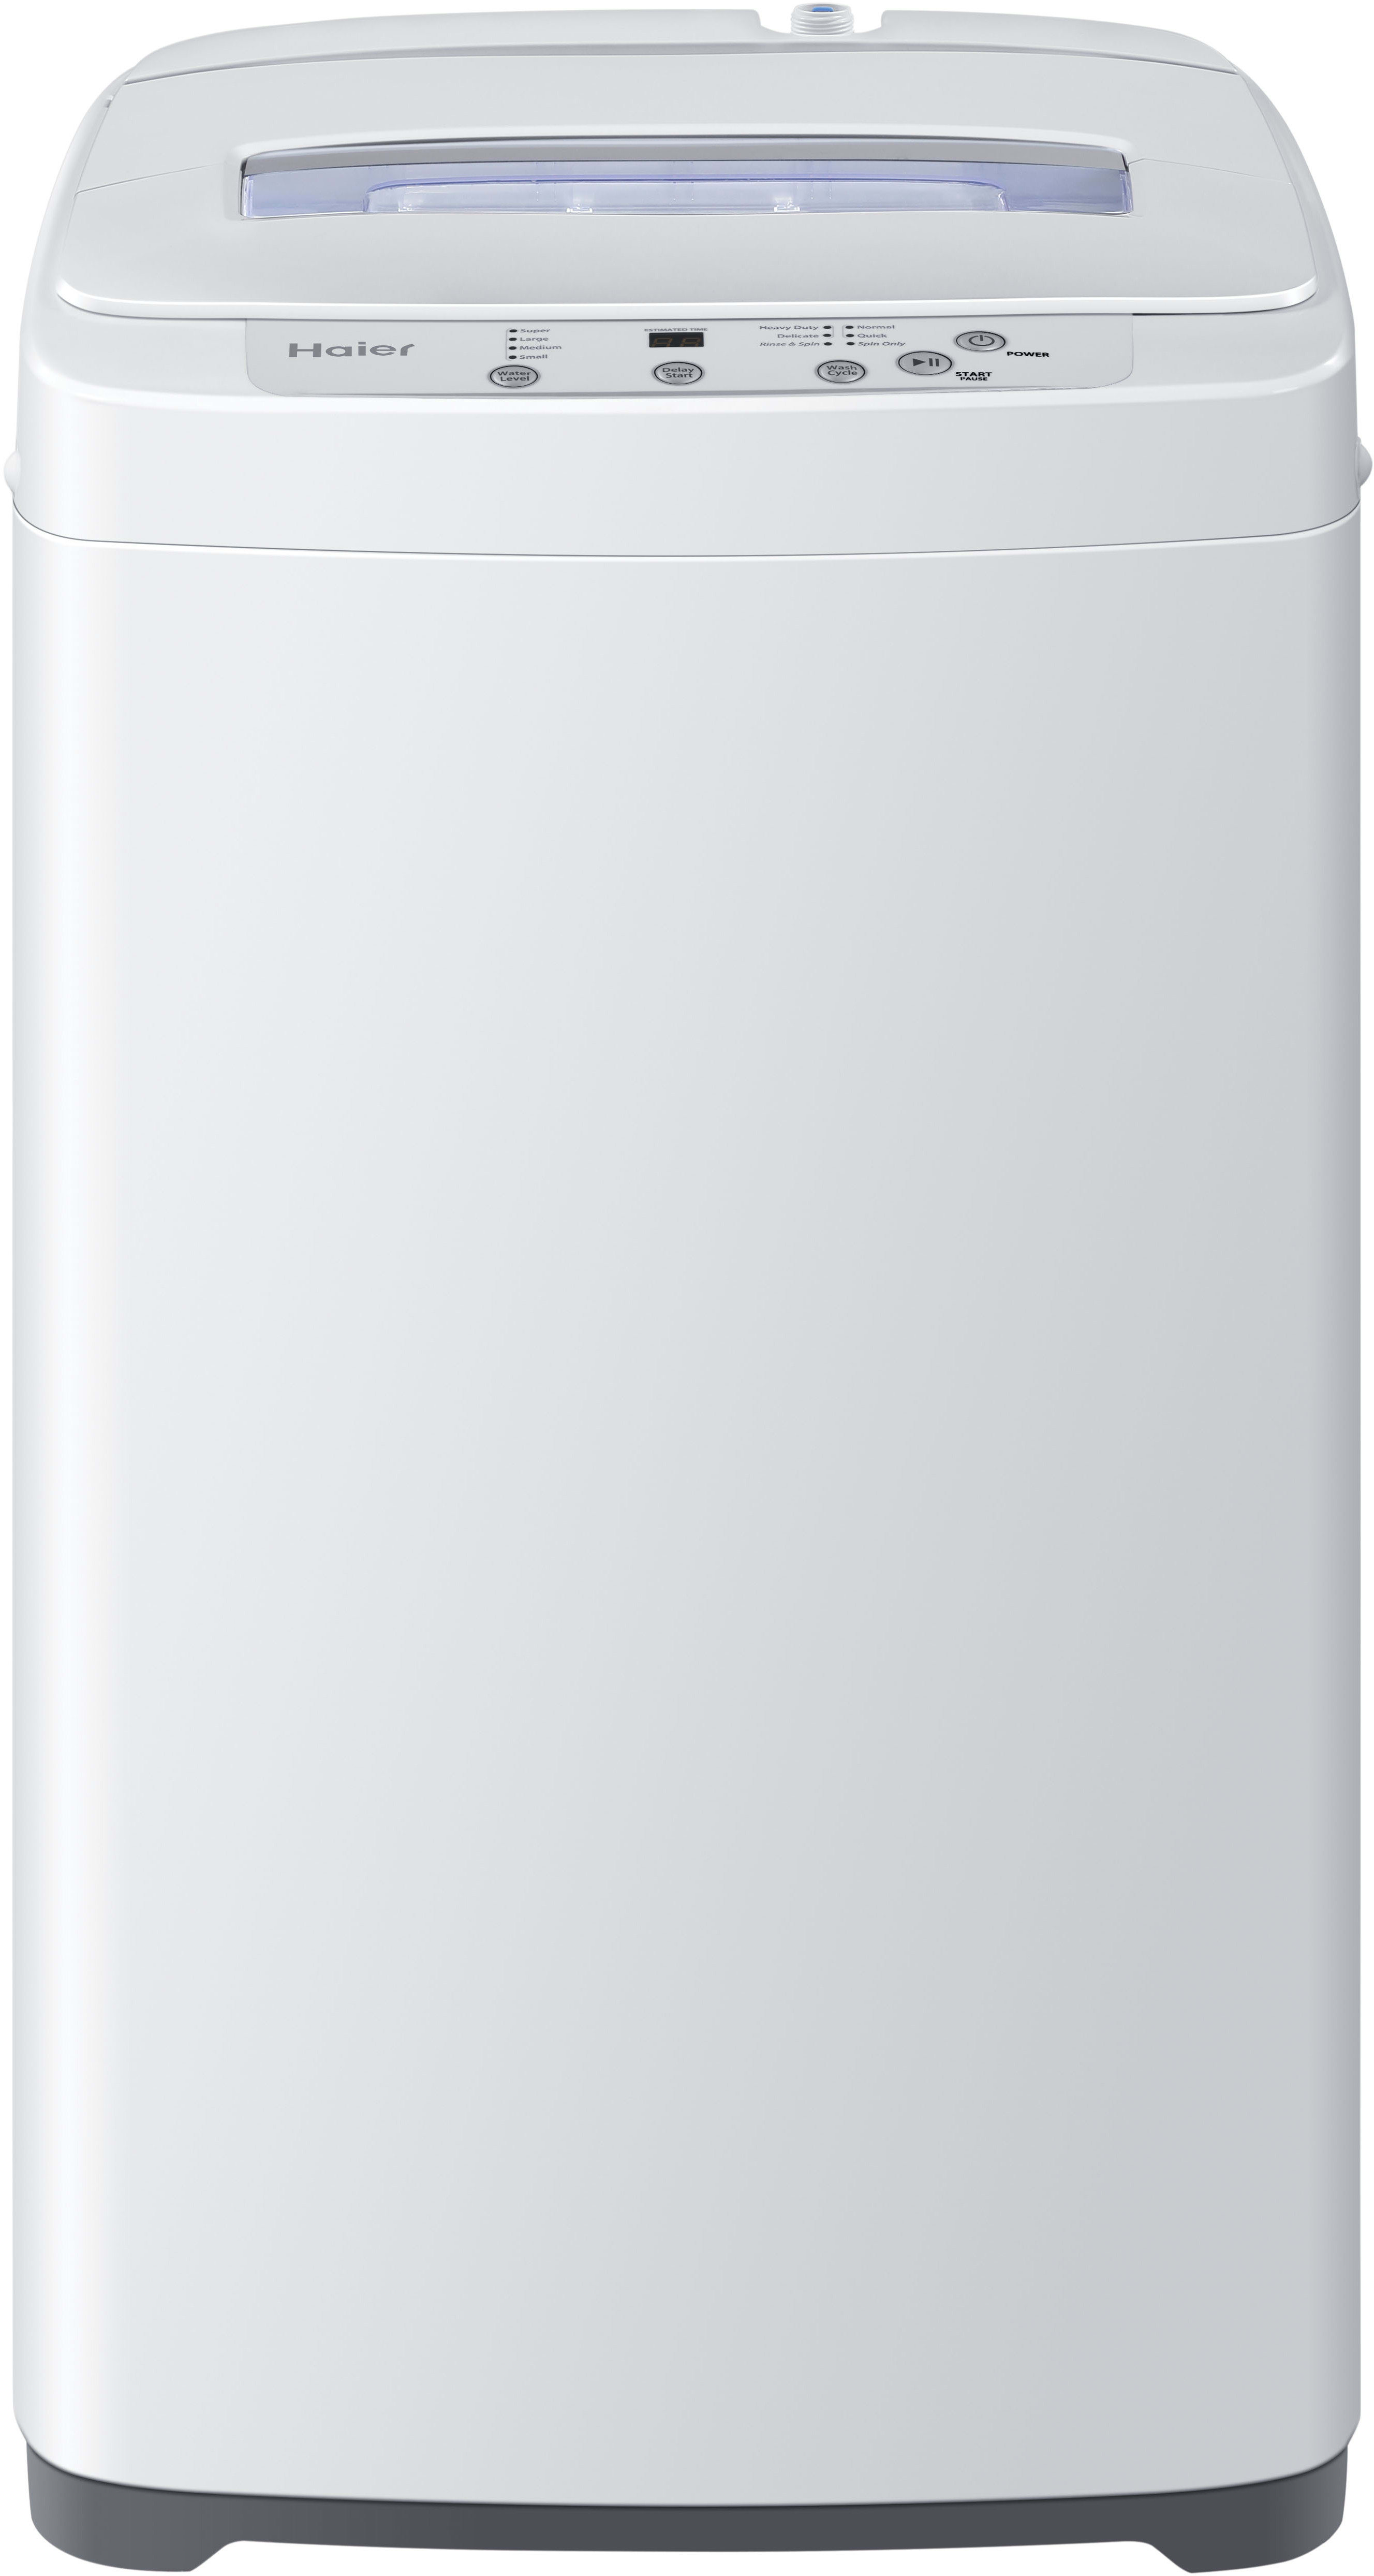 Haier Hlp24e 20 Inch 1 5 Cu Ft Portable Washer With 3